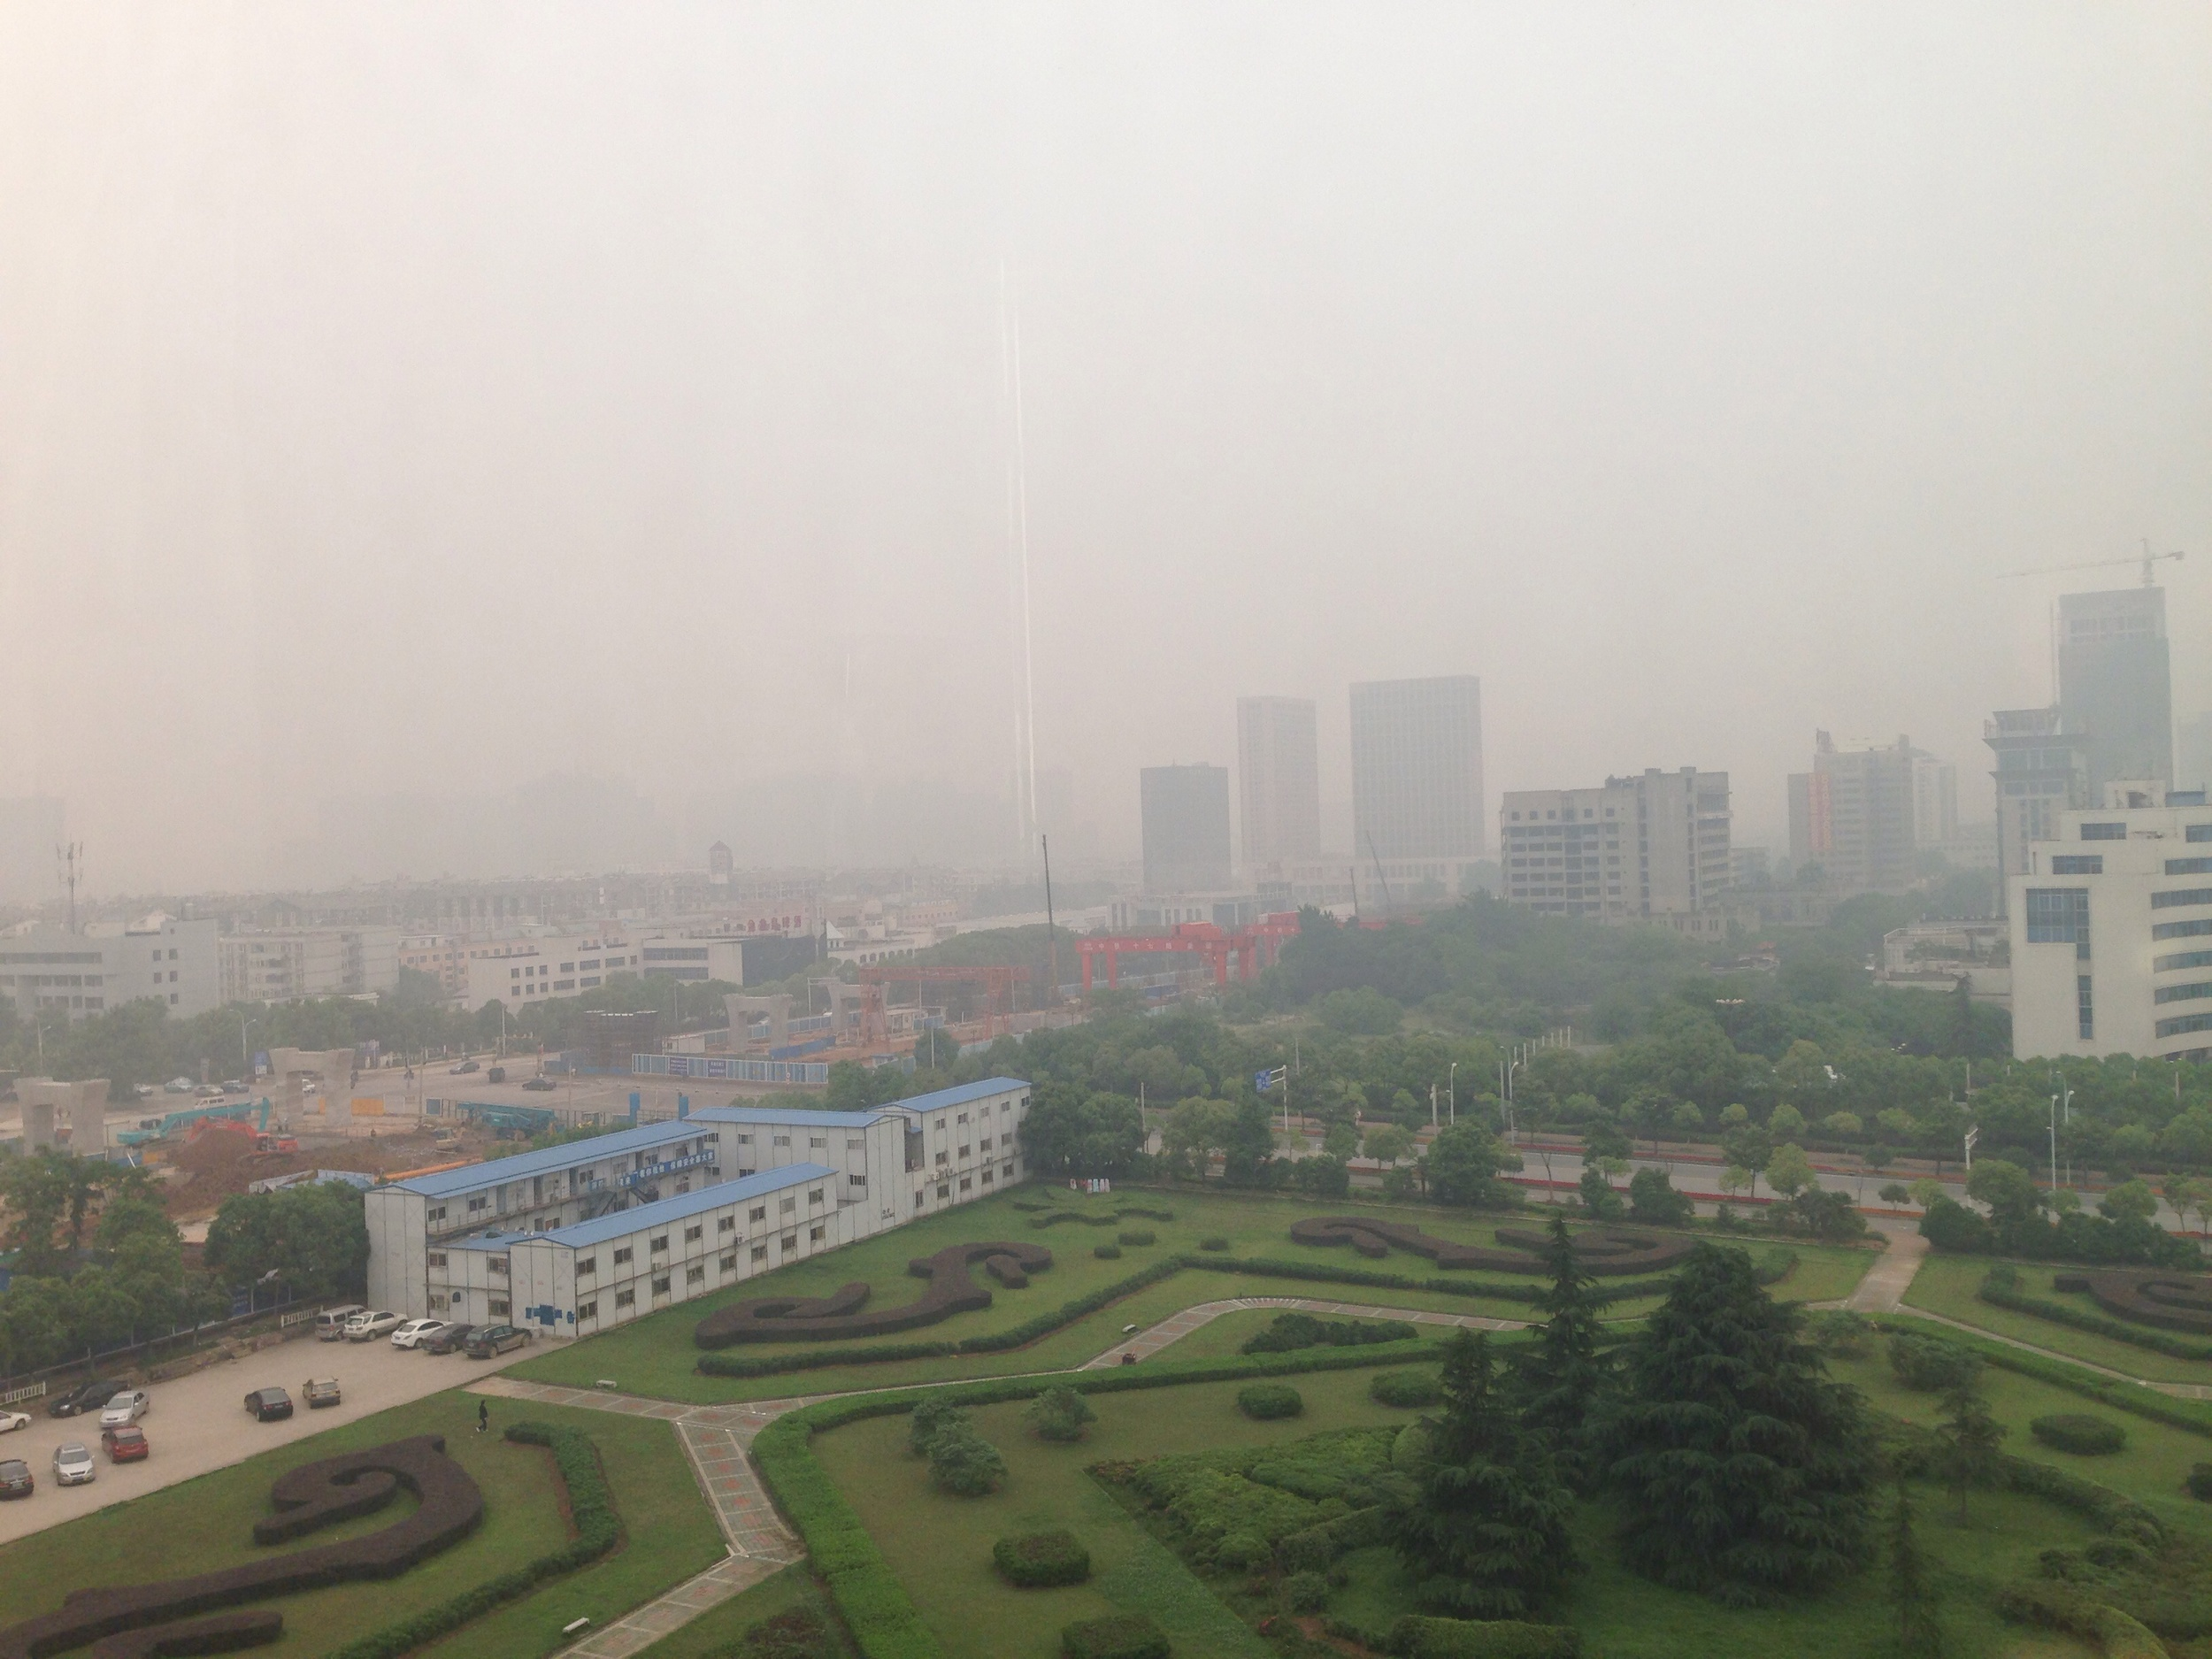 Day one around noon. There are many more buildings hiding in that haze.